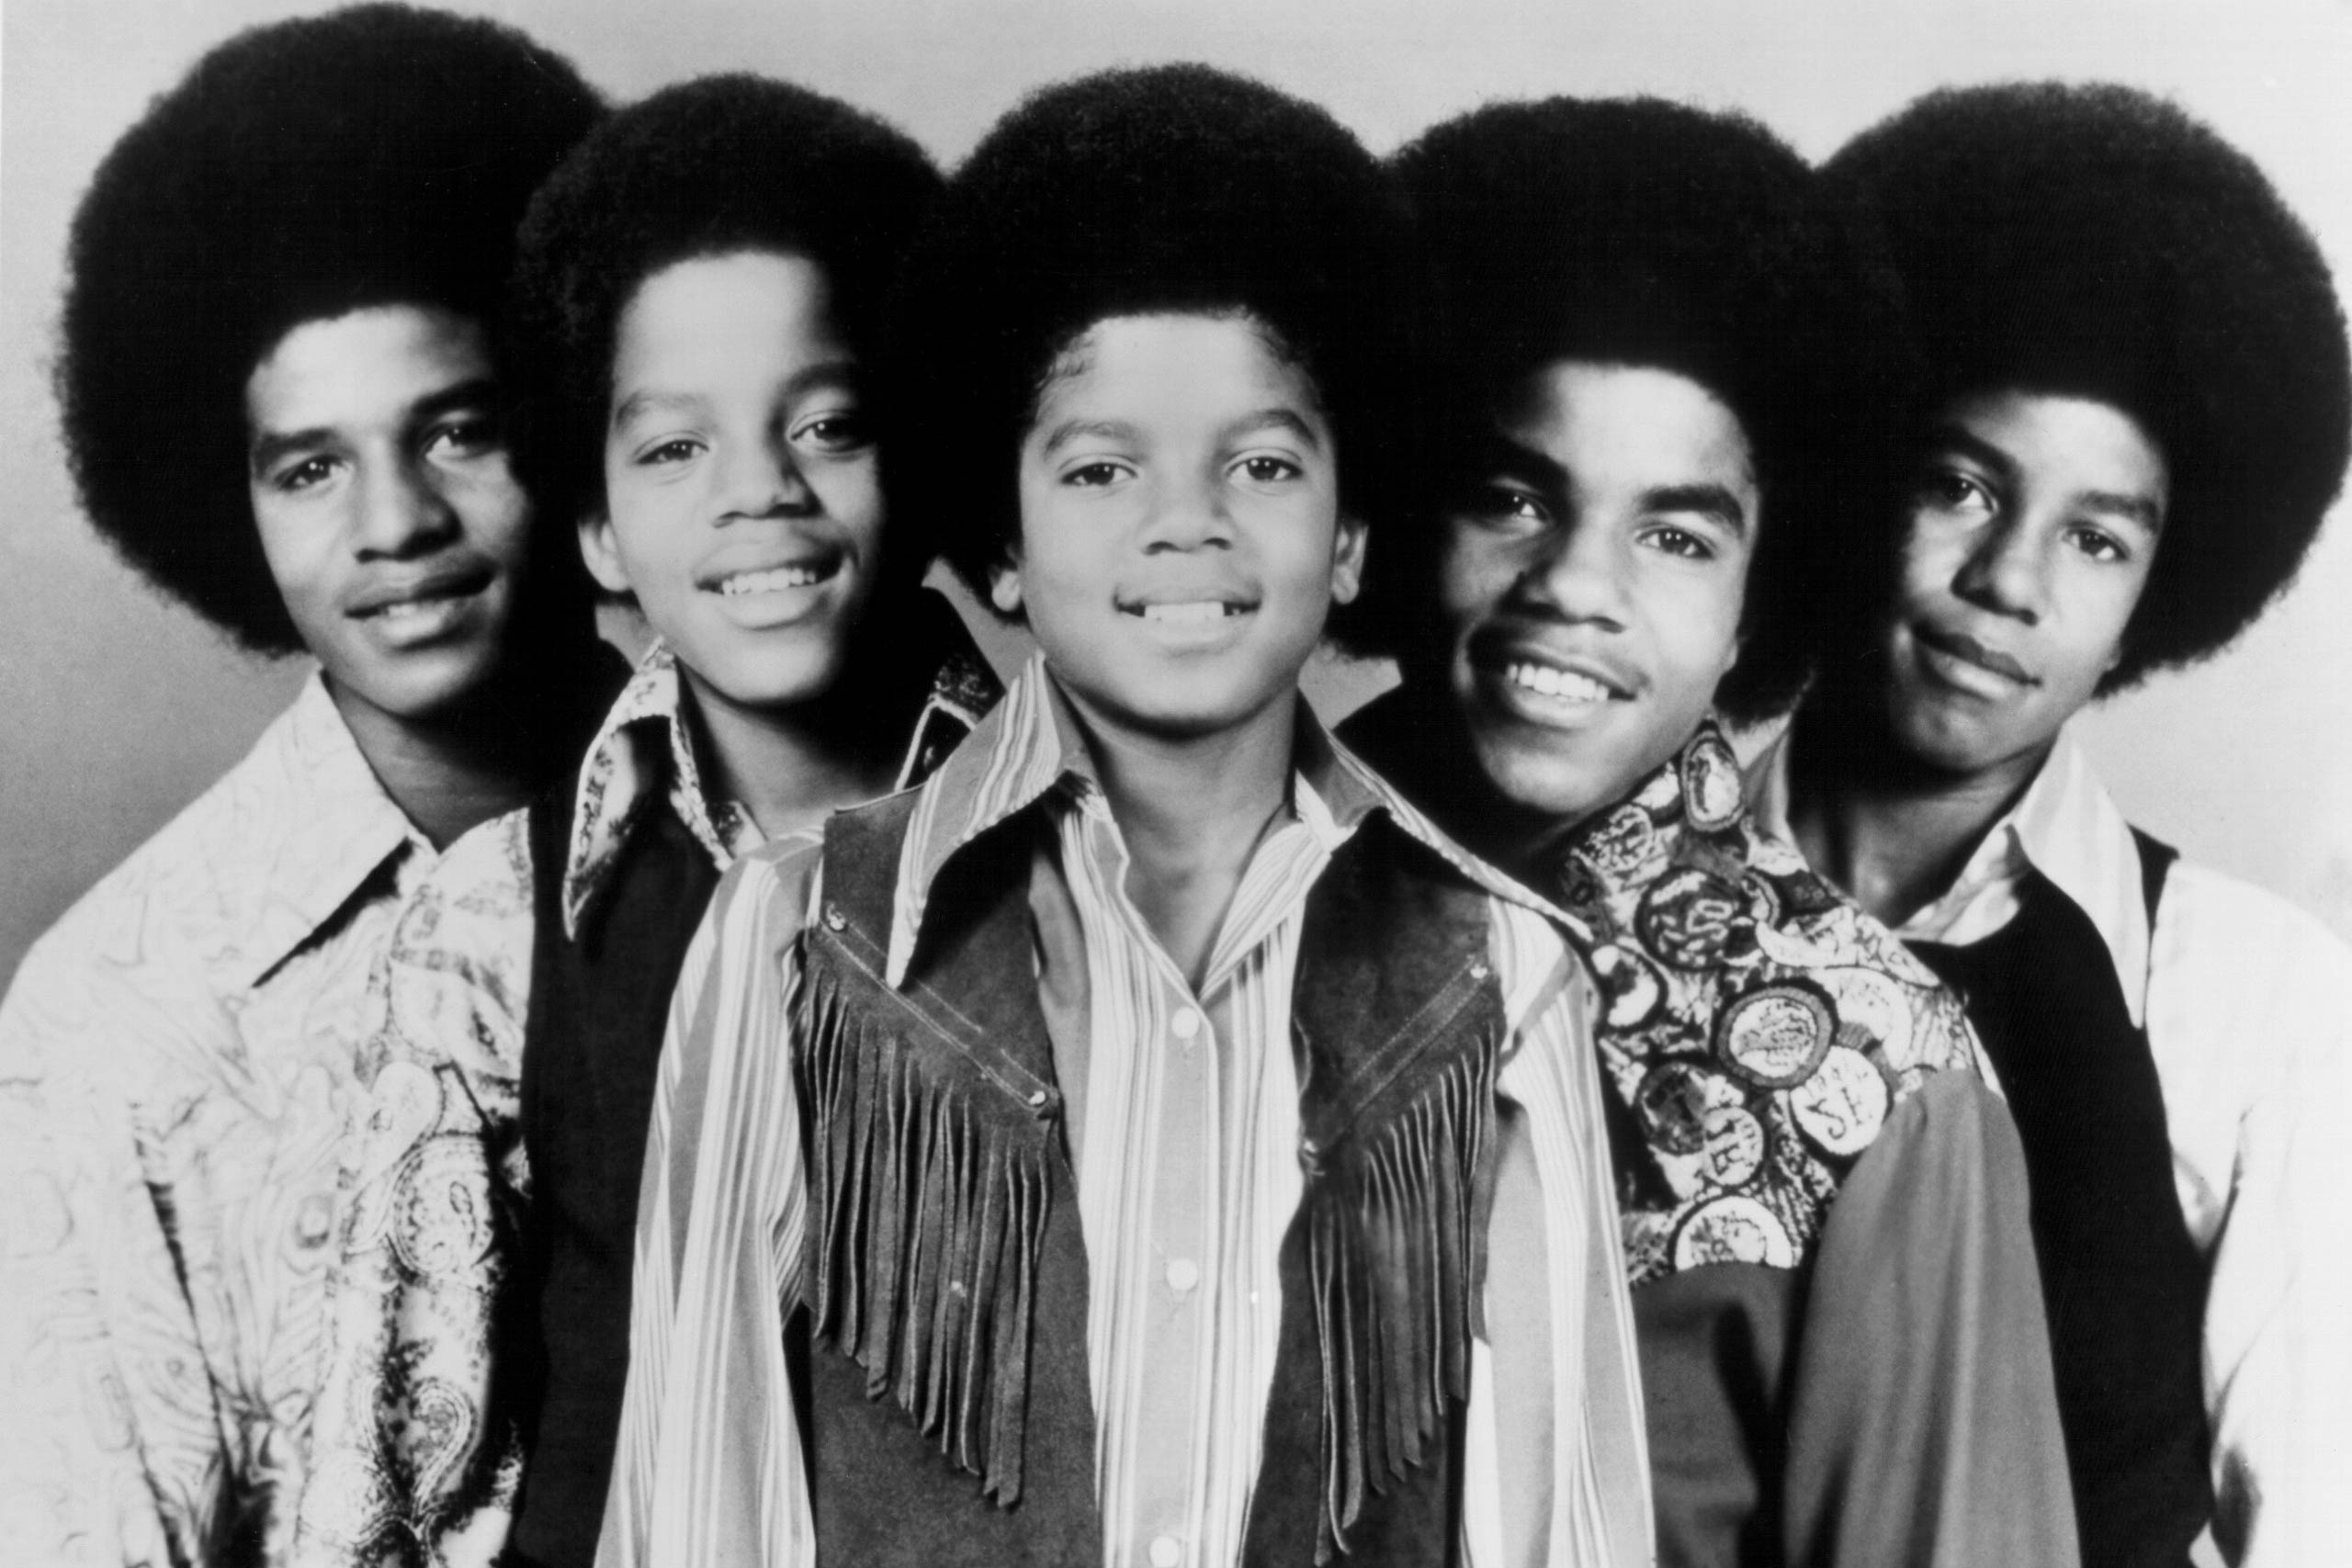 <strong>Jackson 5</strong>